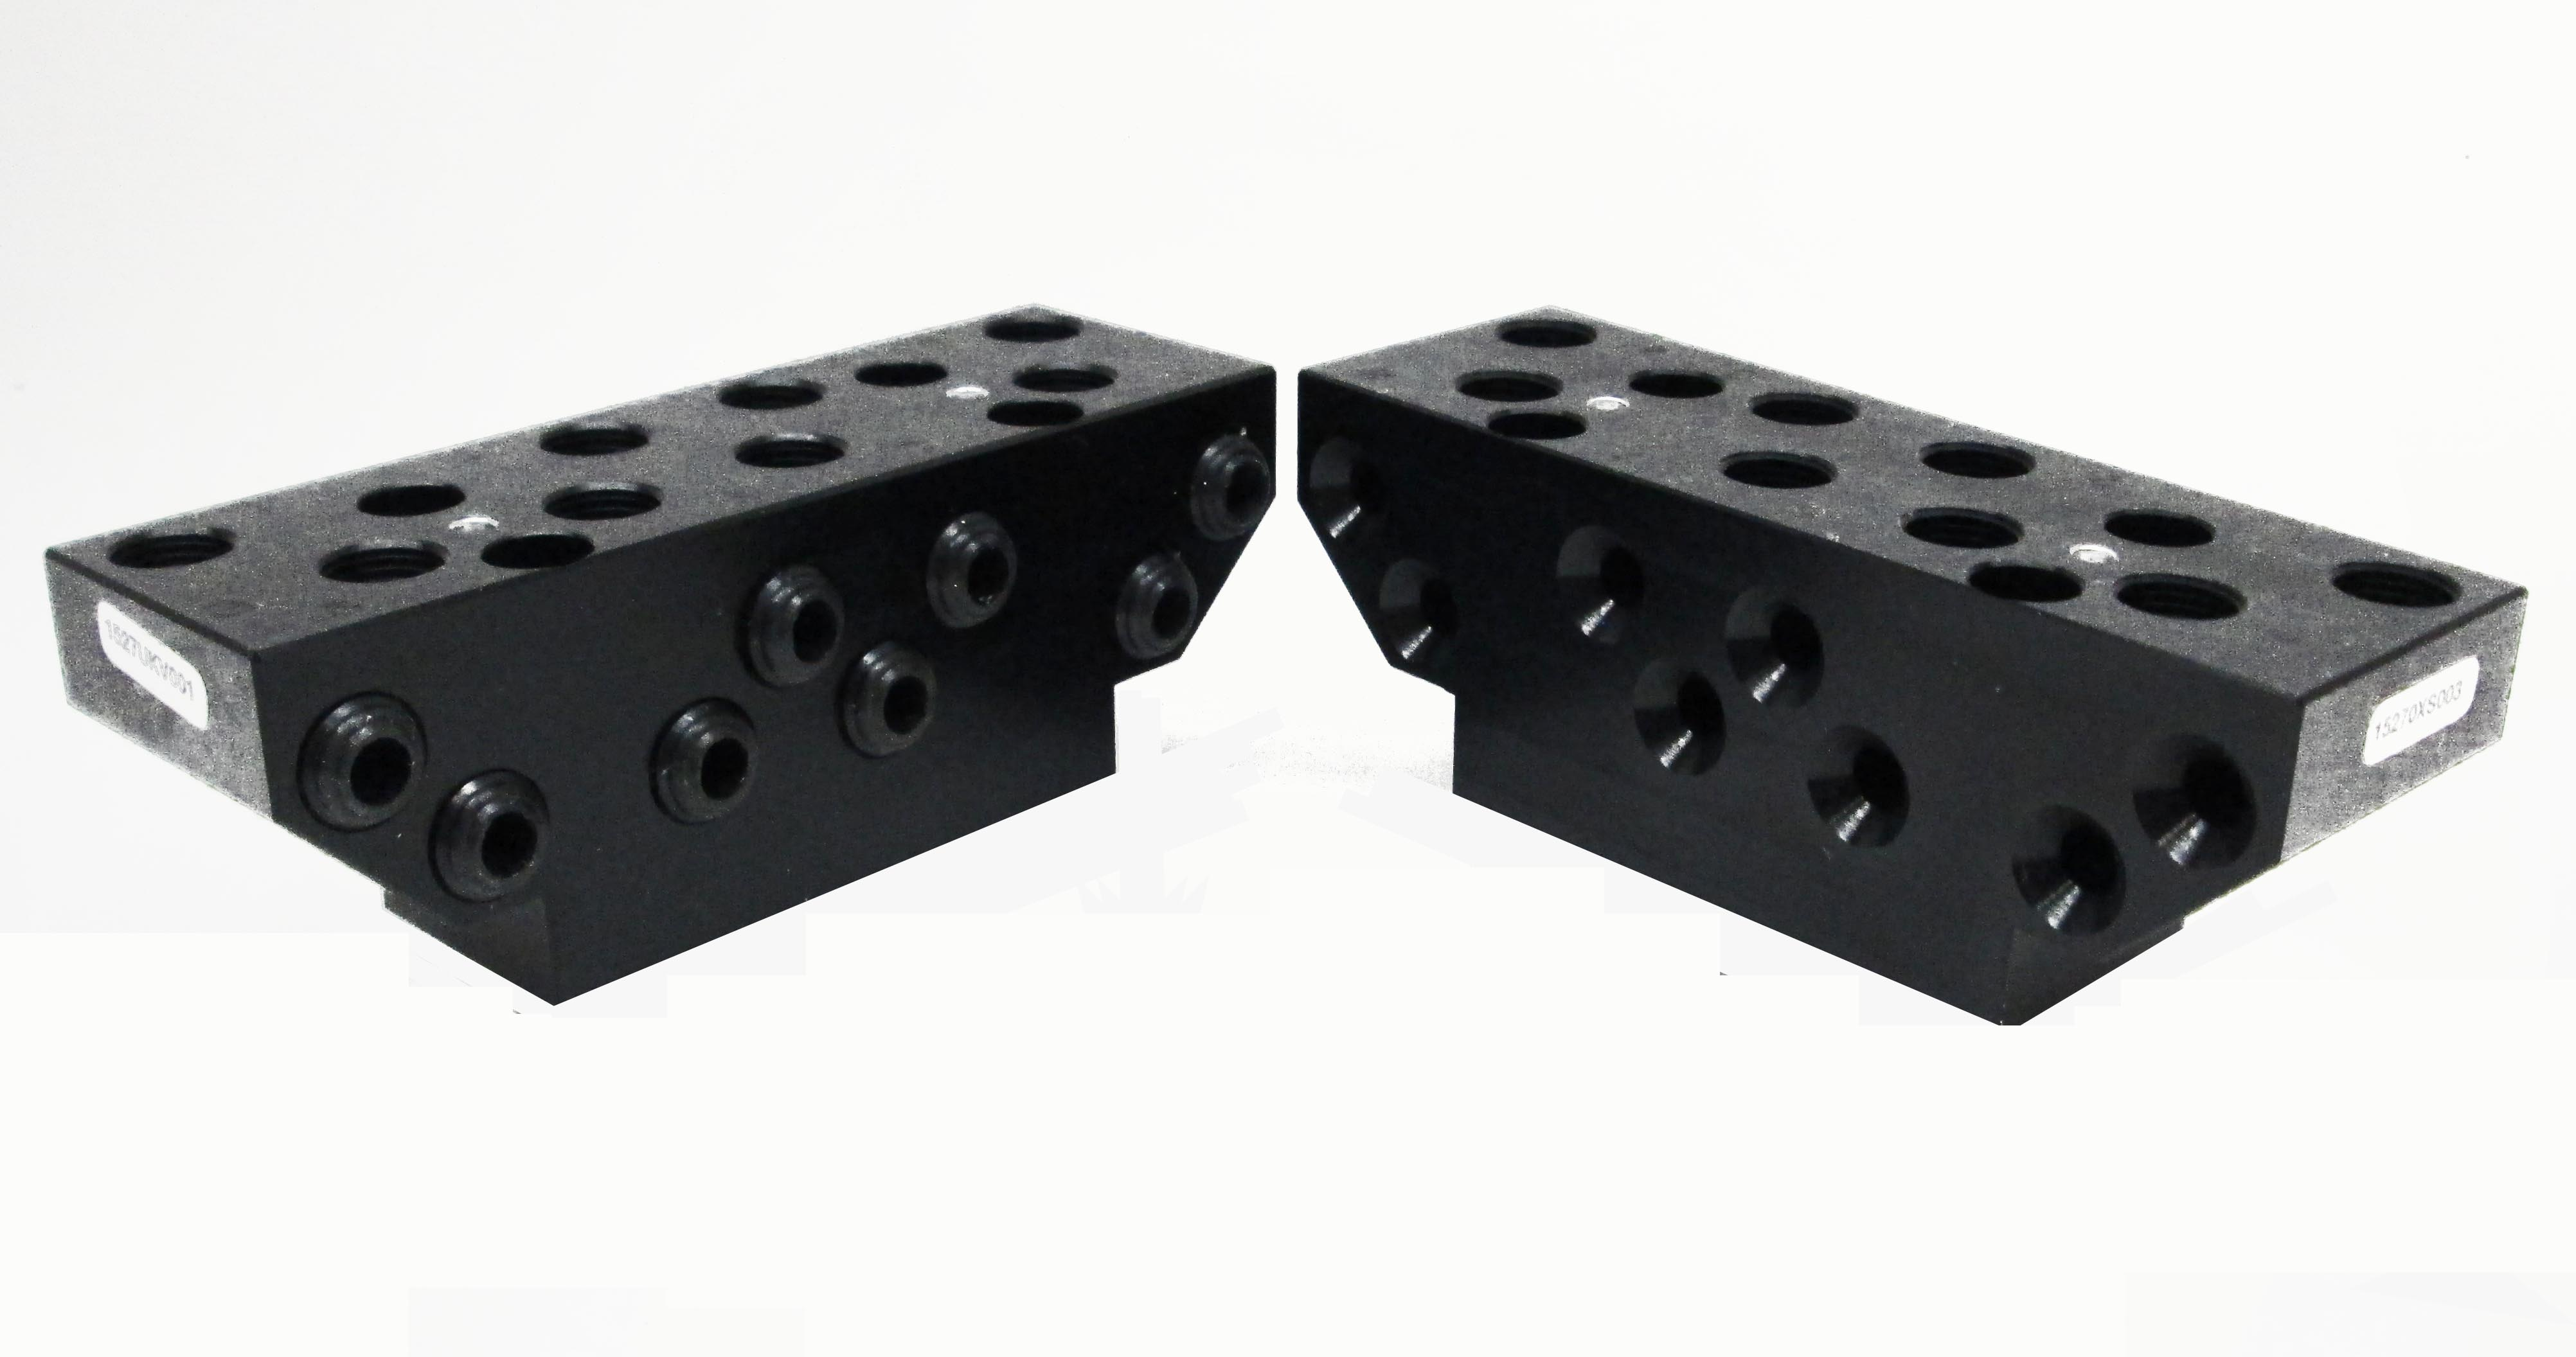 P188 Euro Modules (Master and Tool)